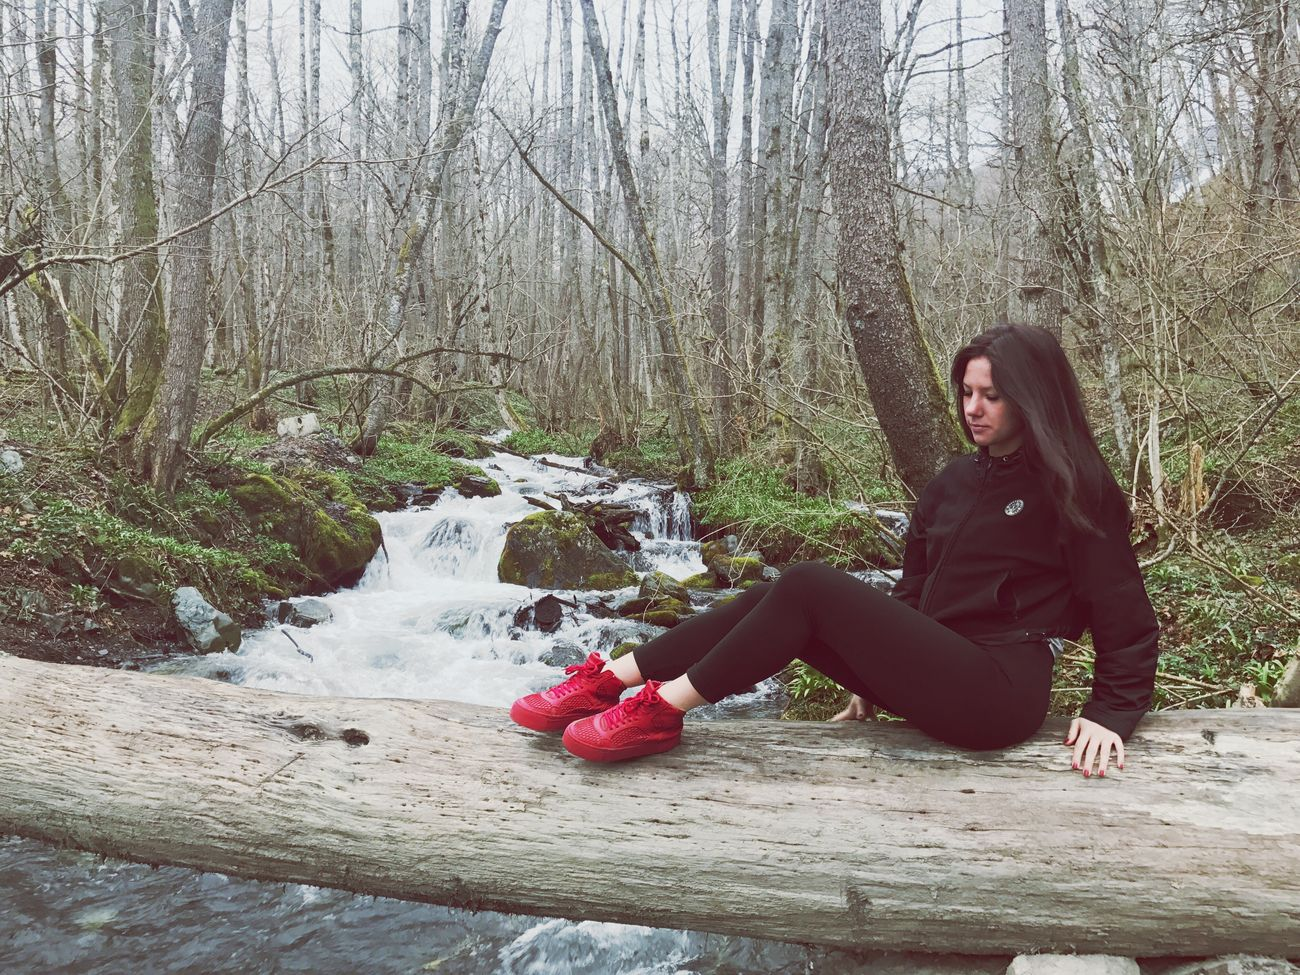 One Woman Only One Person Sitting Nature Forest Tree Real People Lifestyles Life Is Beautiful Krasnaya Polyana Weekend Activities Outdoors